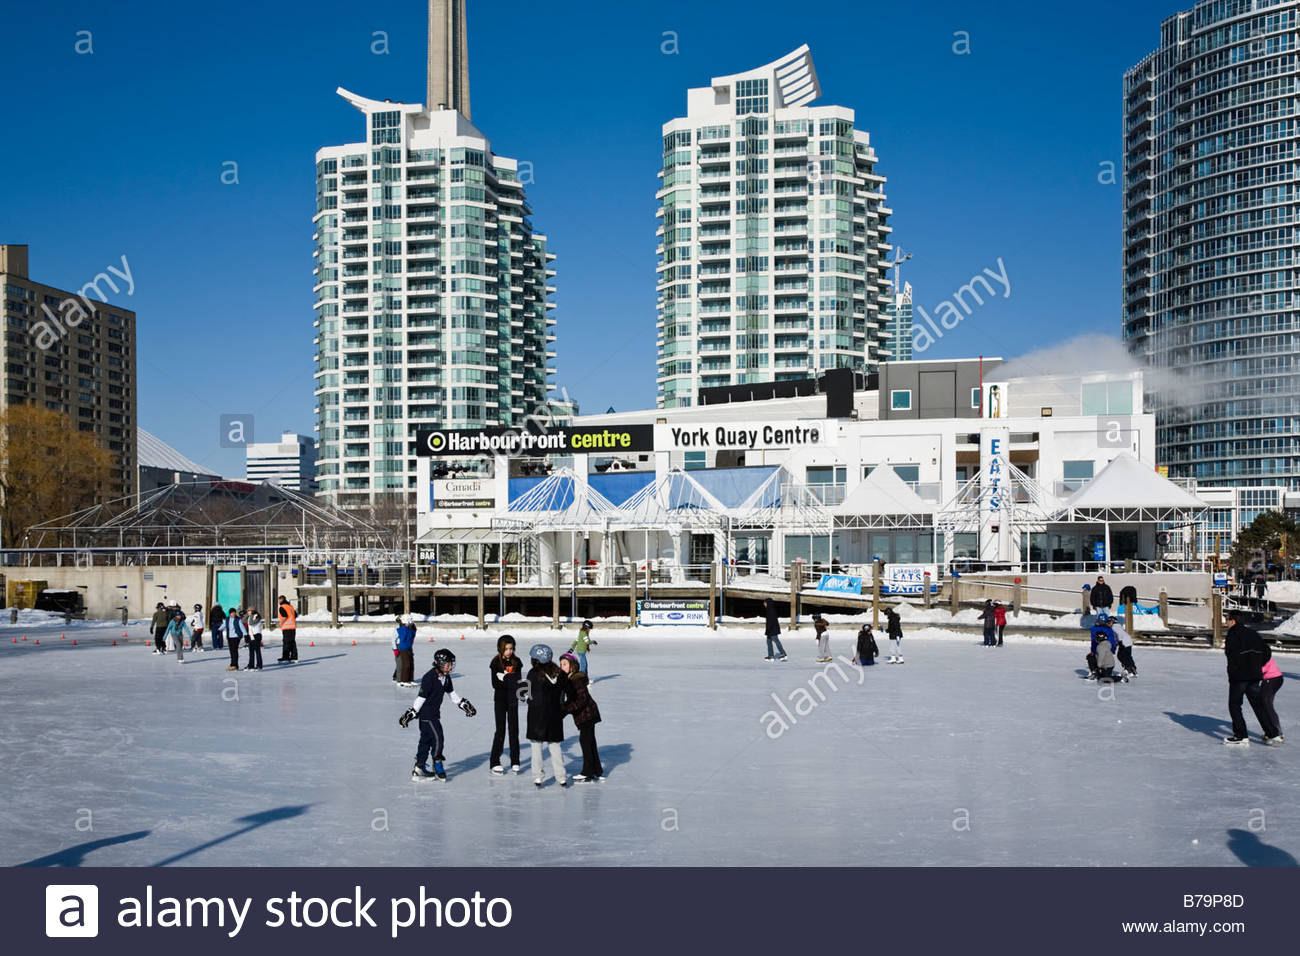 10 Places Where you can Skate for Free - Toronto4Kids ...